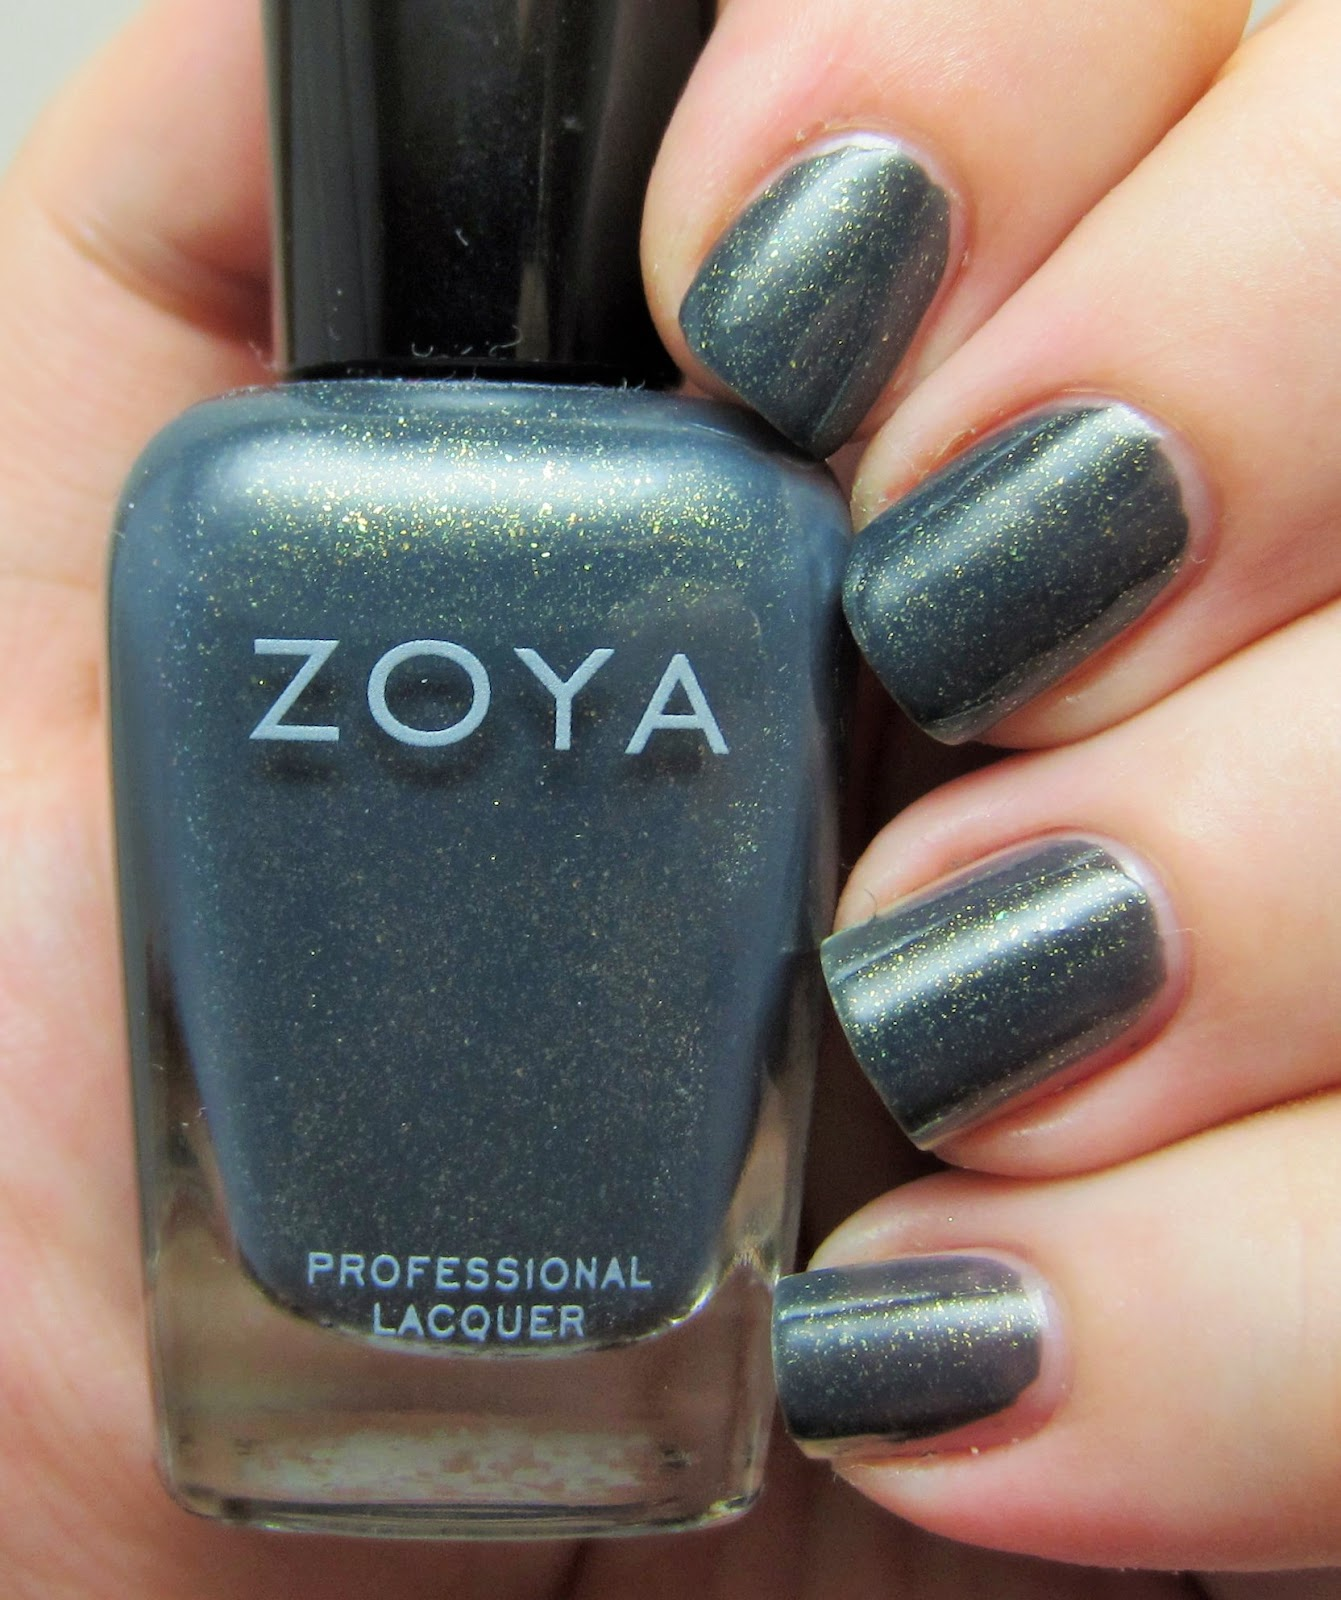 c3e8bbe3273 Veruschka is one of Zoya s Matte Velvet polishes. Again